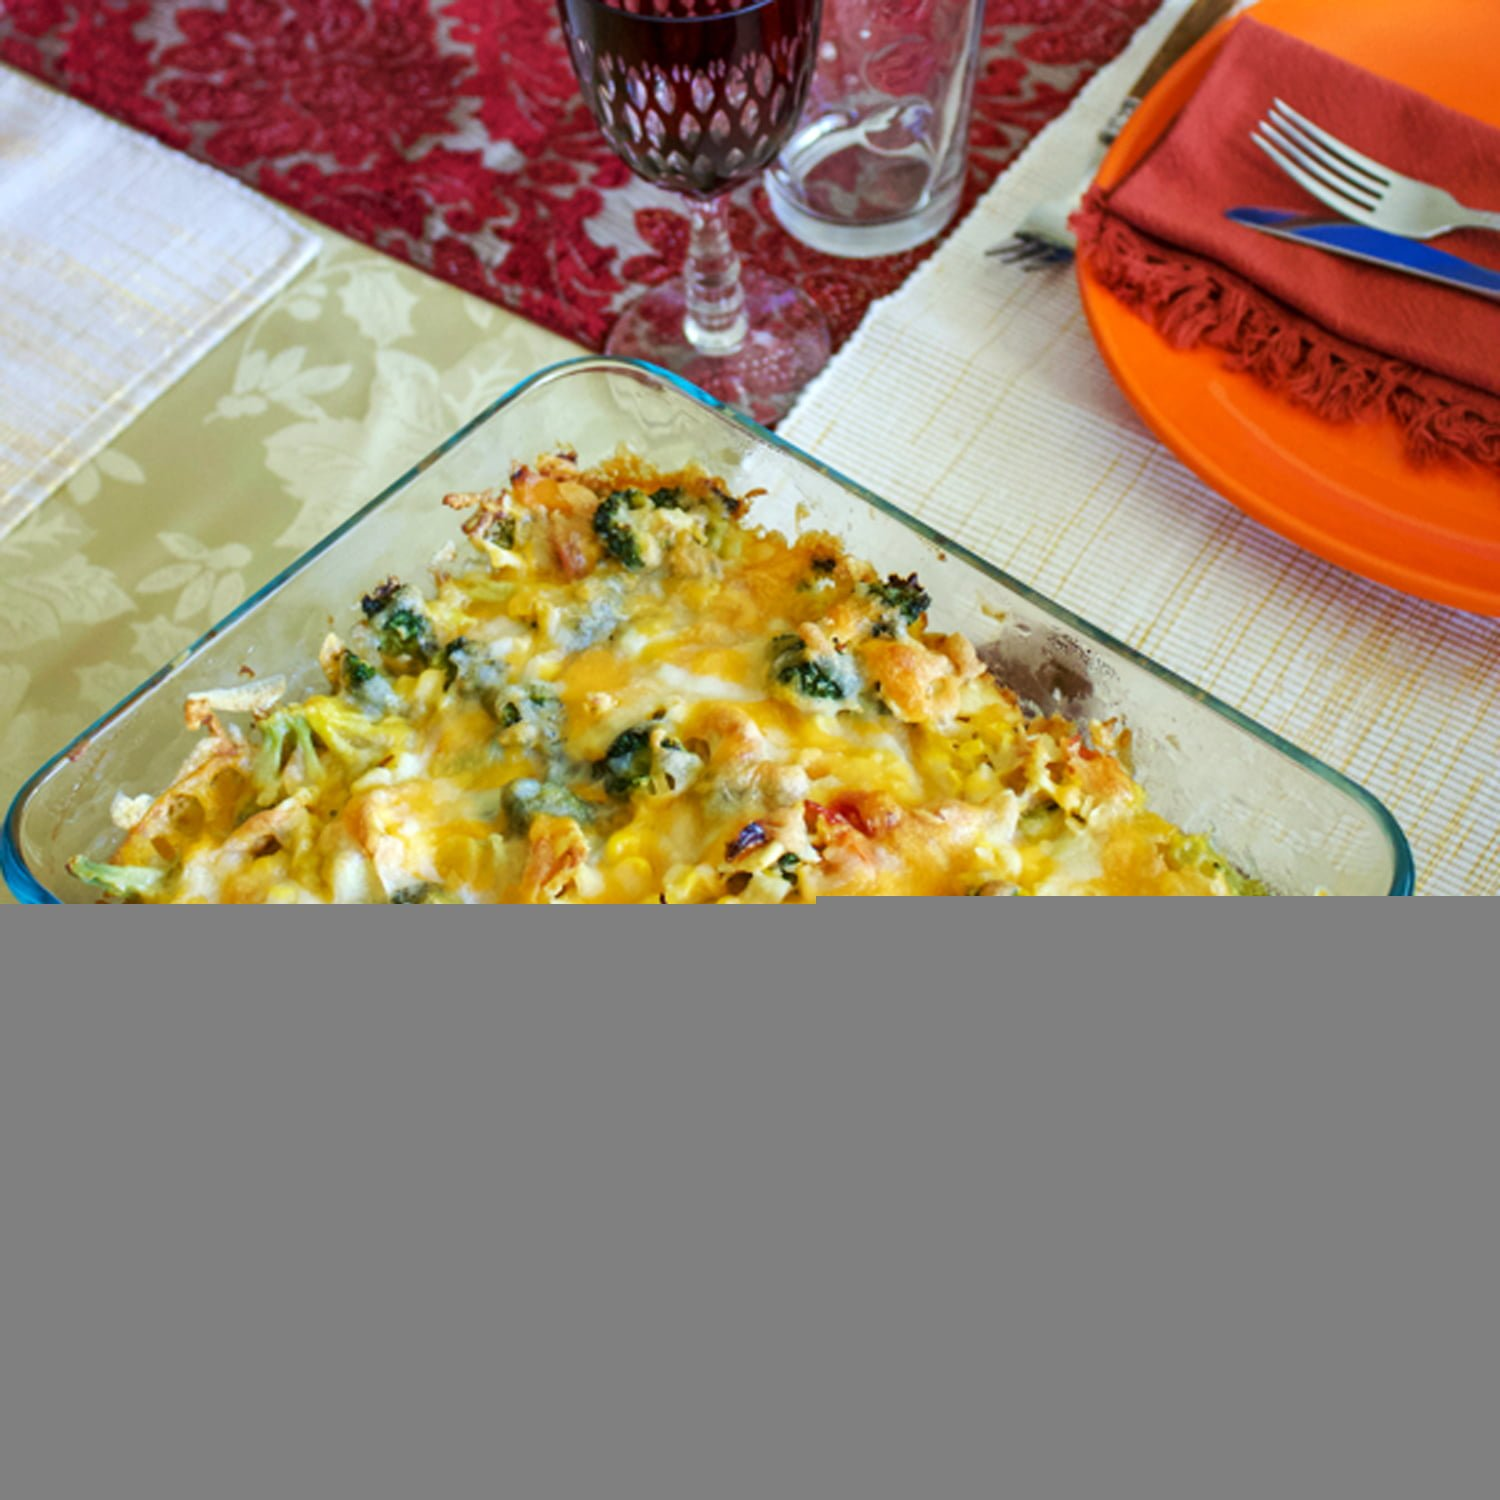 Scalloped Corn with vegetables is my favorite recipe for Thanksgiving. Very easy to put together and delicious, this recipe is perfect for the holidays.